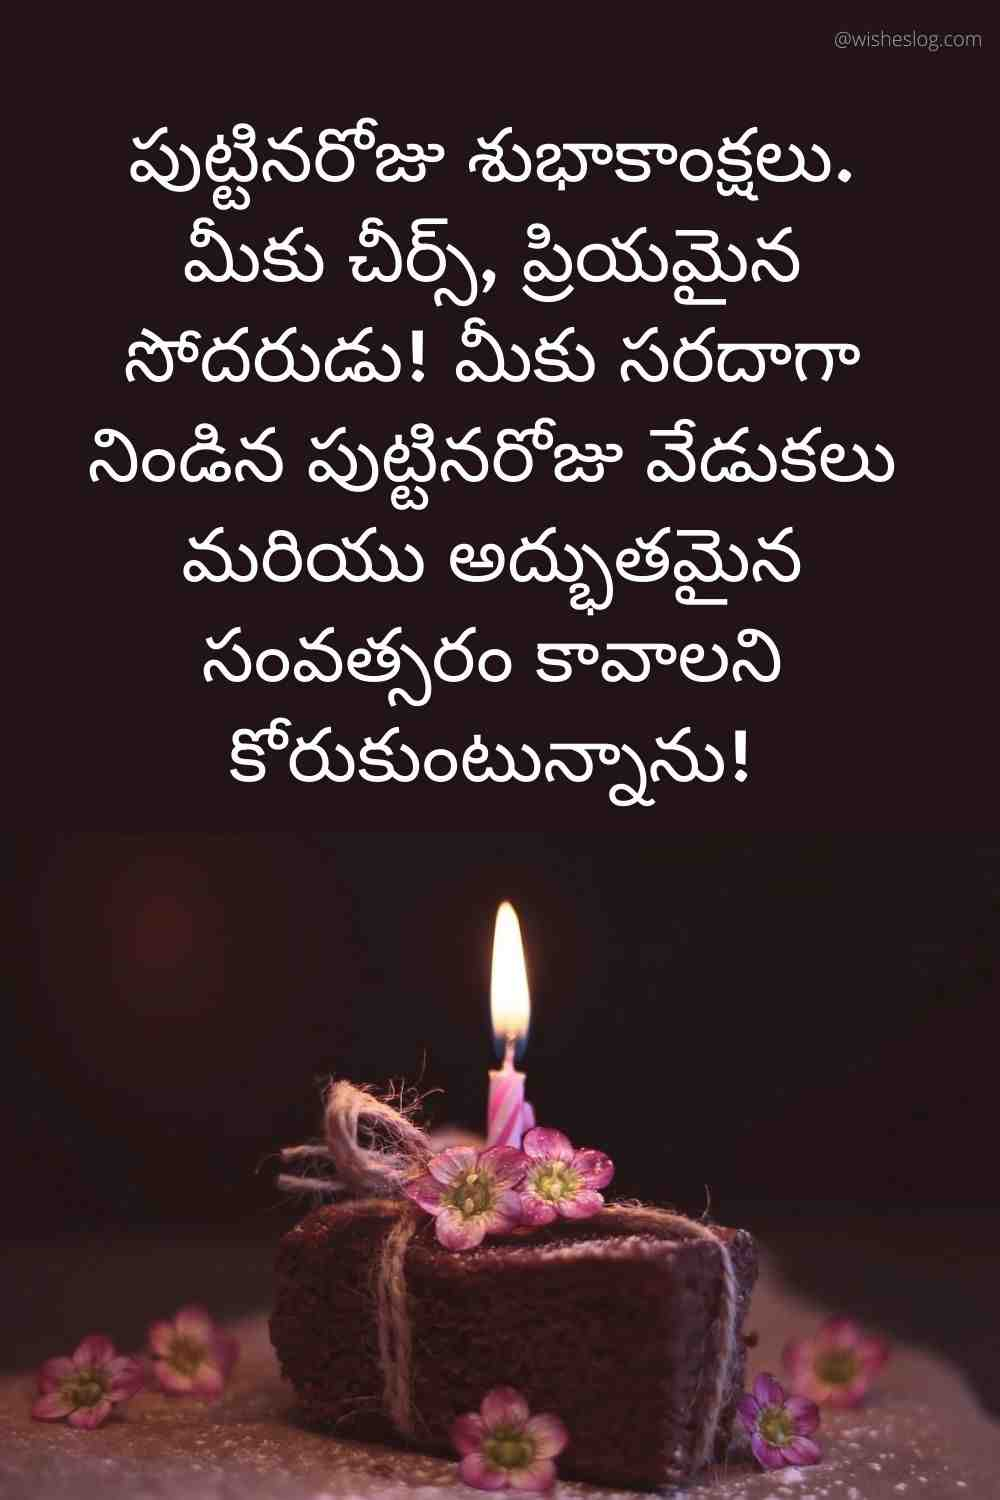 birthday quotations in telugu for brother